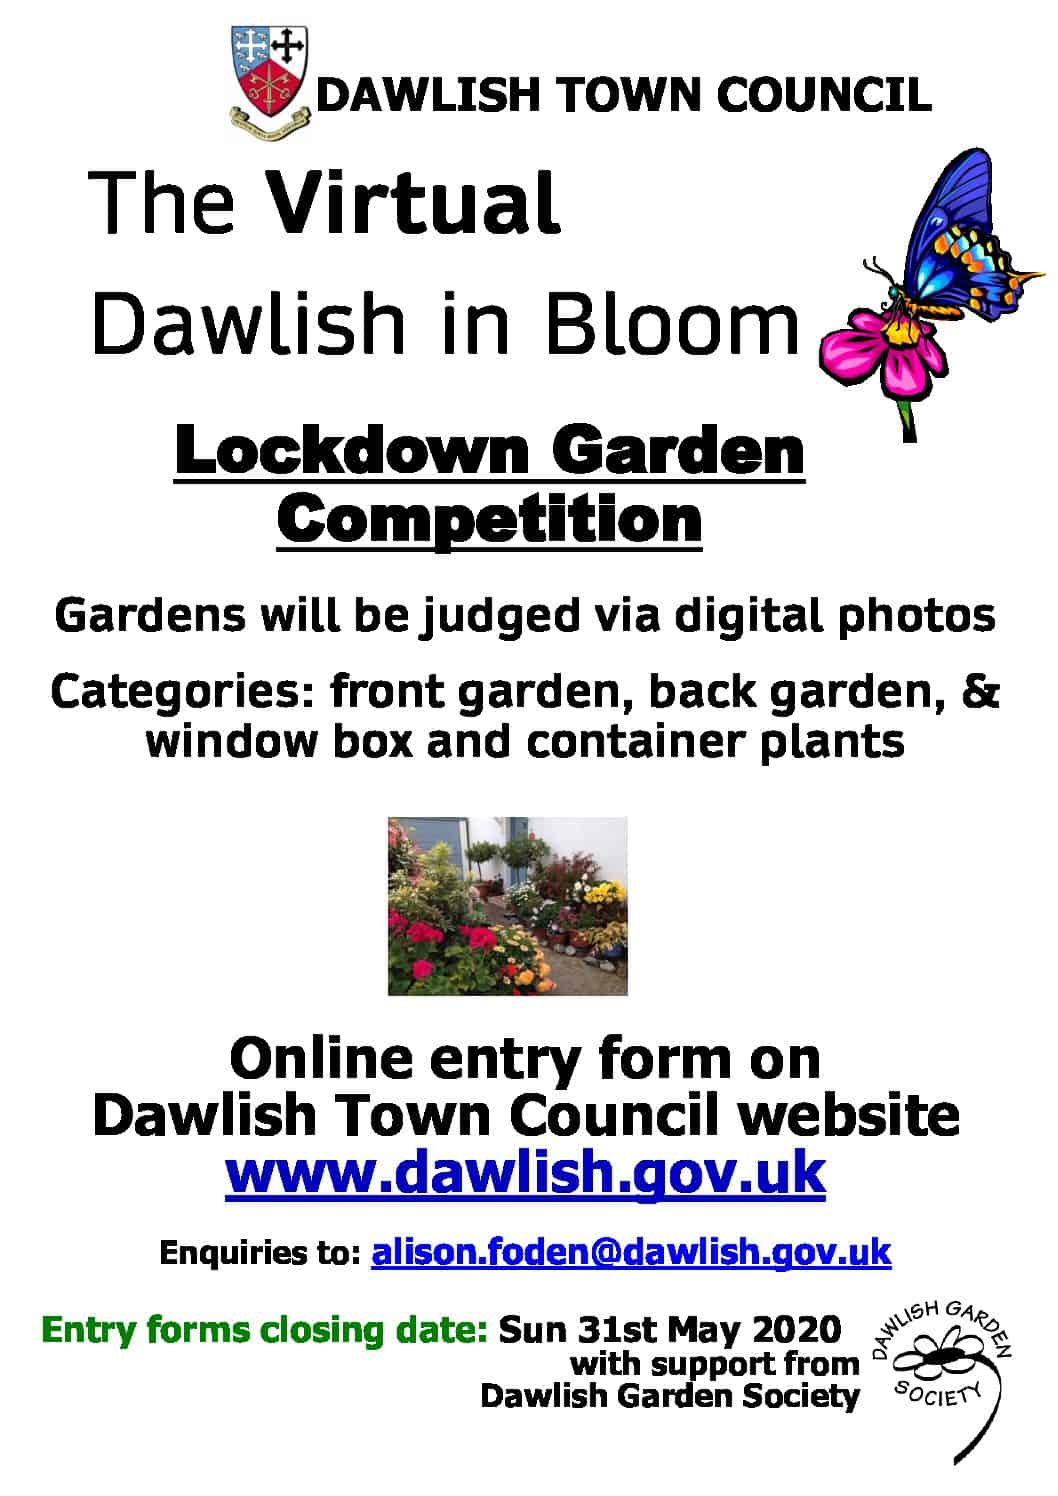 The virtual Dawlish in Bloom 2020 – lockdown garden competition!